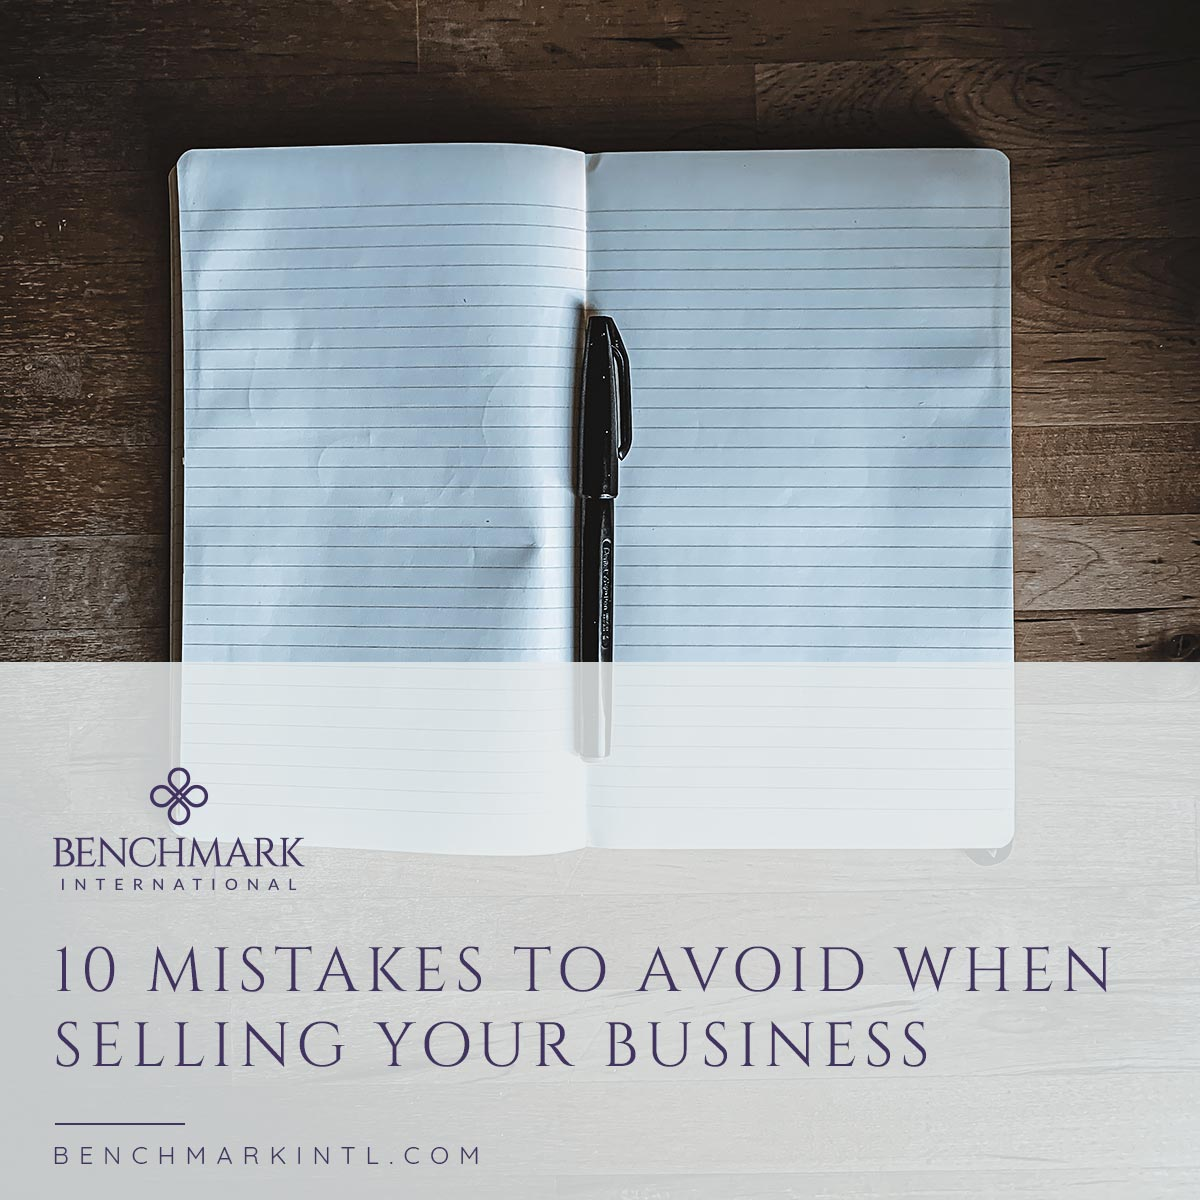 10_Mistakes_To_Avoid_When_Selling_Your_Business_Social